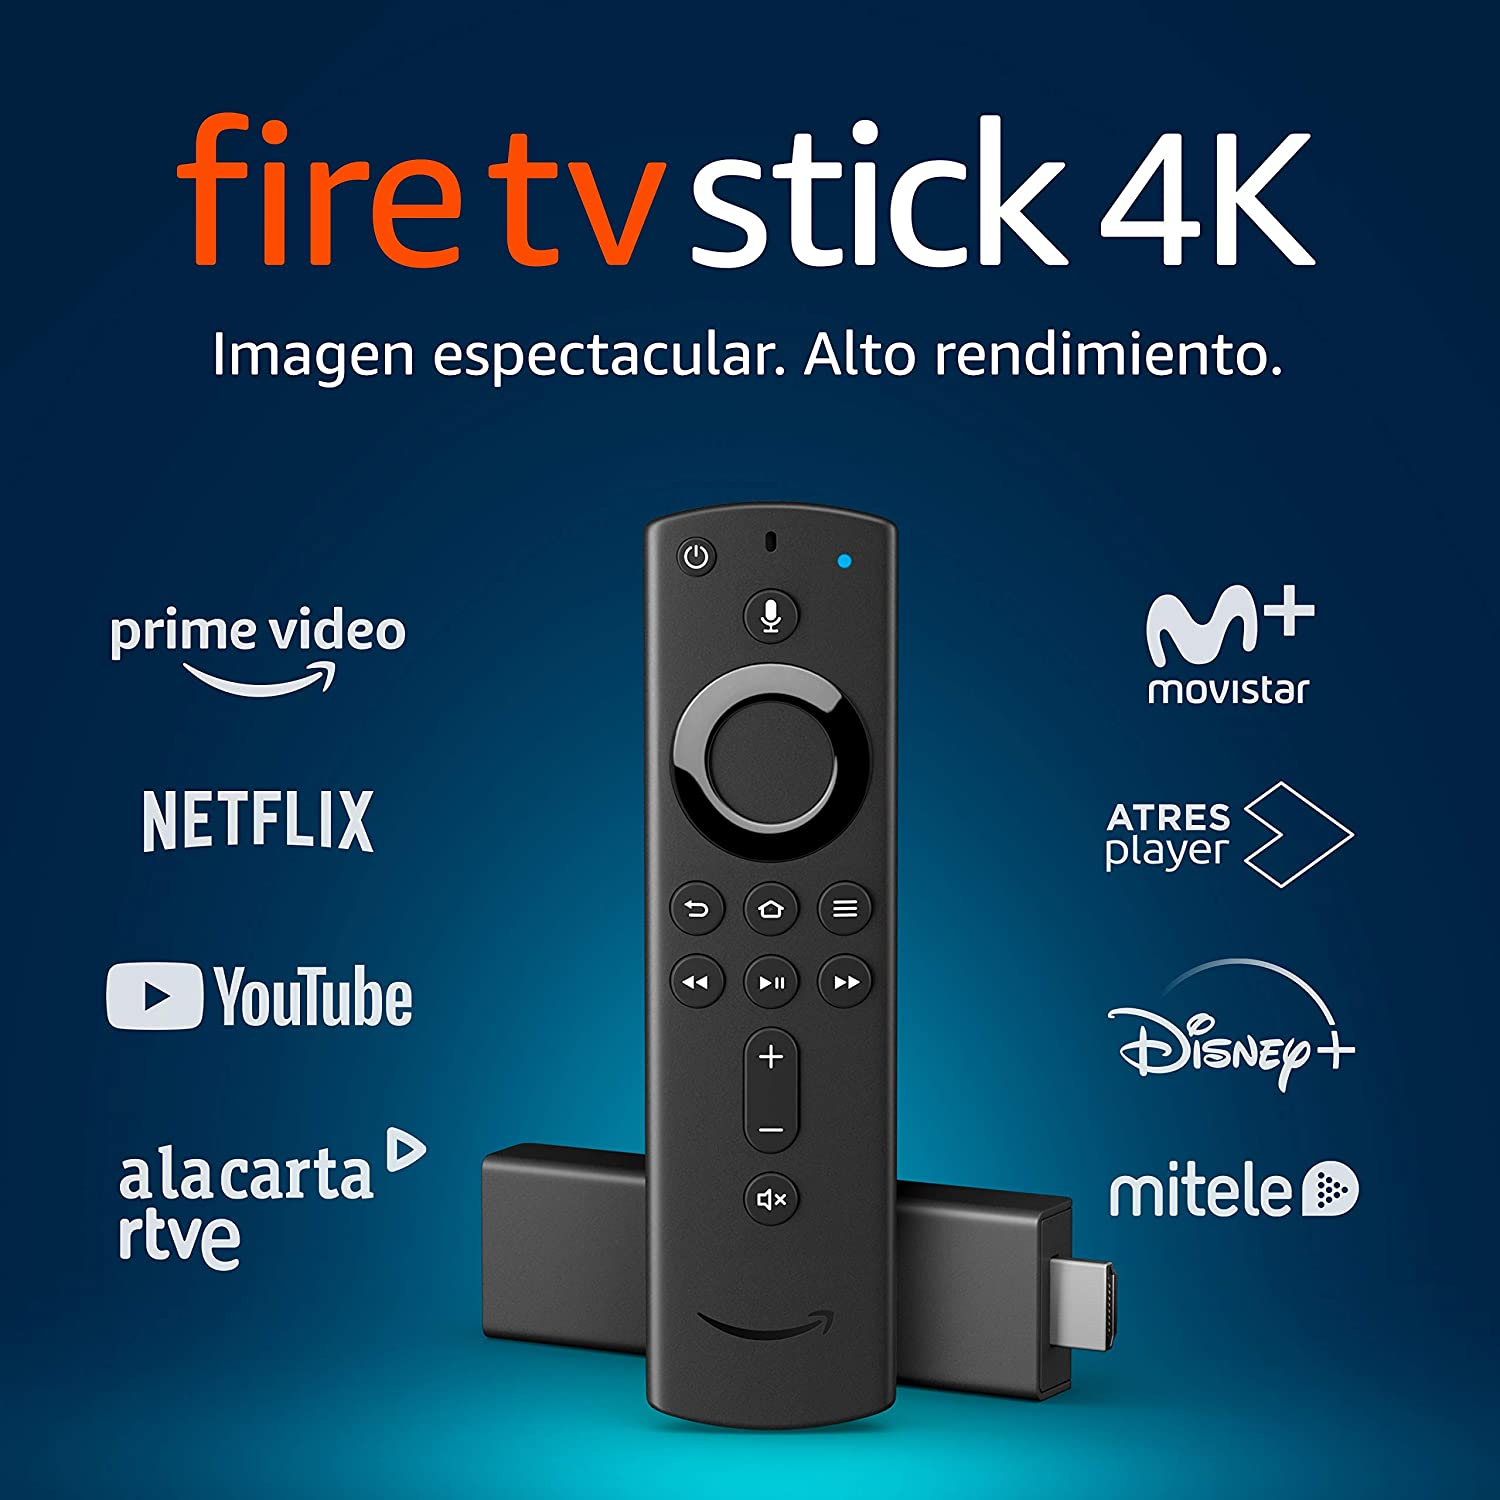 Fire TV Stick 4K Ultra HD con mando por voz Alexa de última generación | Reproductor de contenido multimedia en streaming